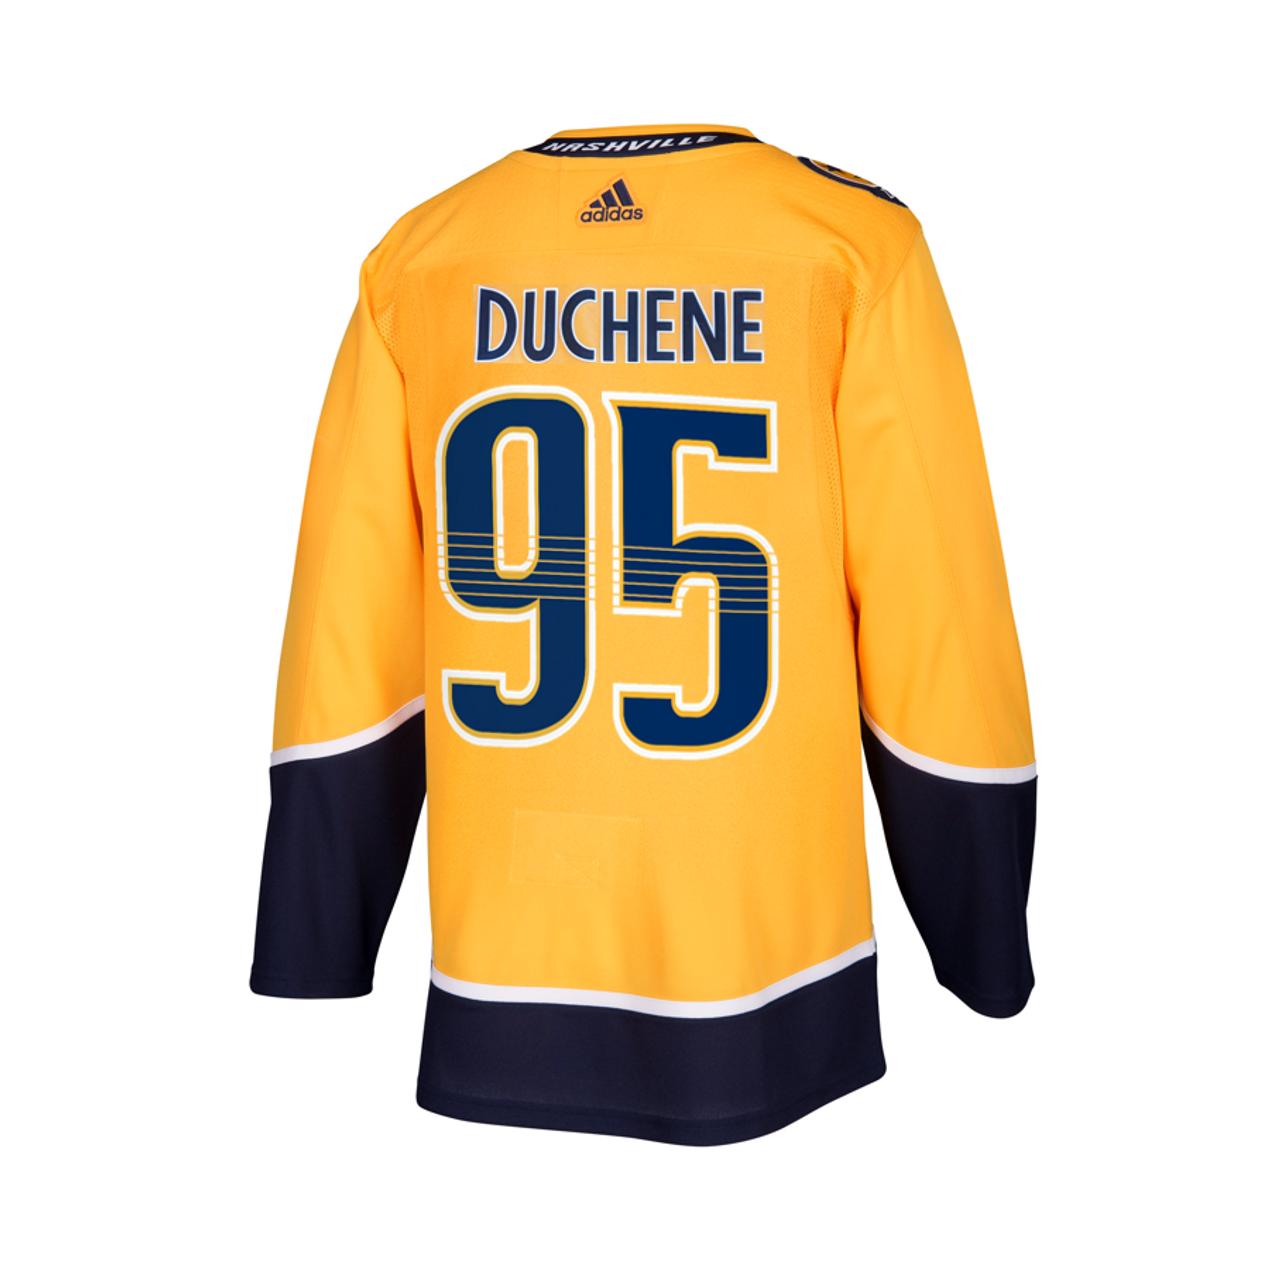 Nashville Predators Adidas Authentic Duchene Jersey Home/Gold